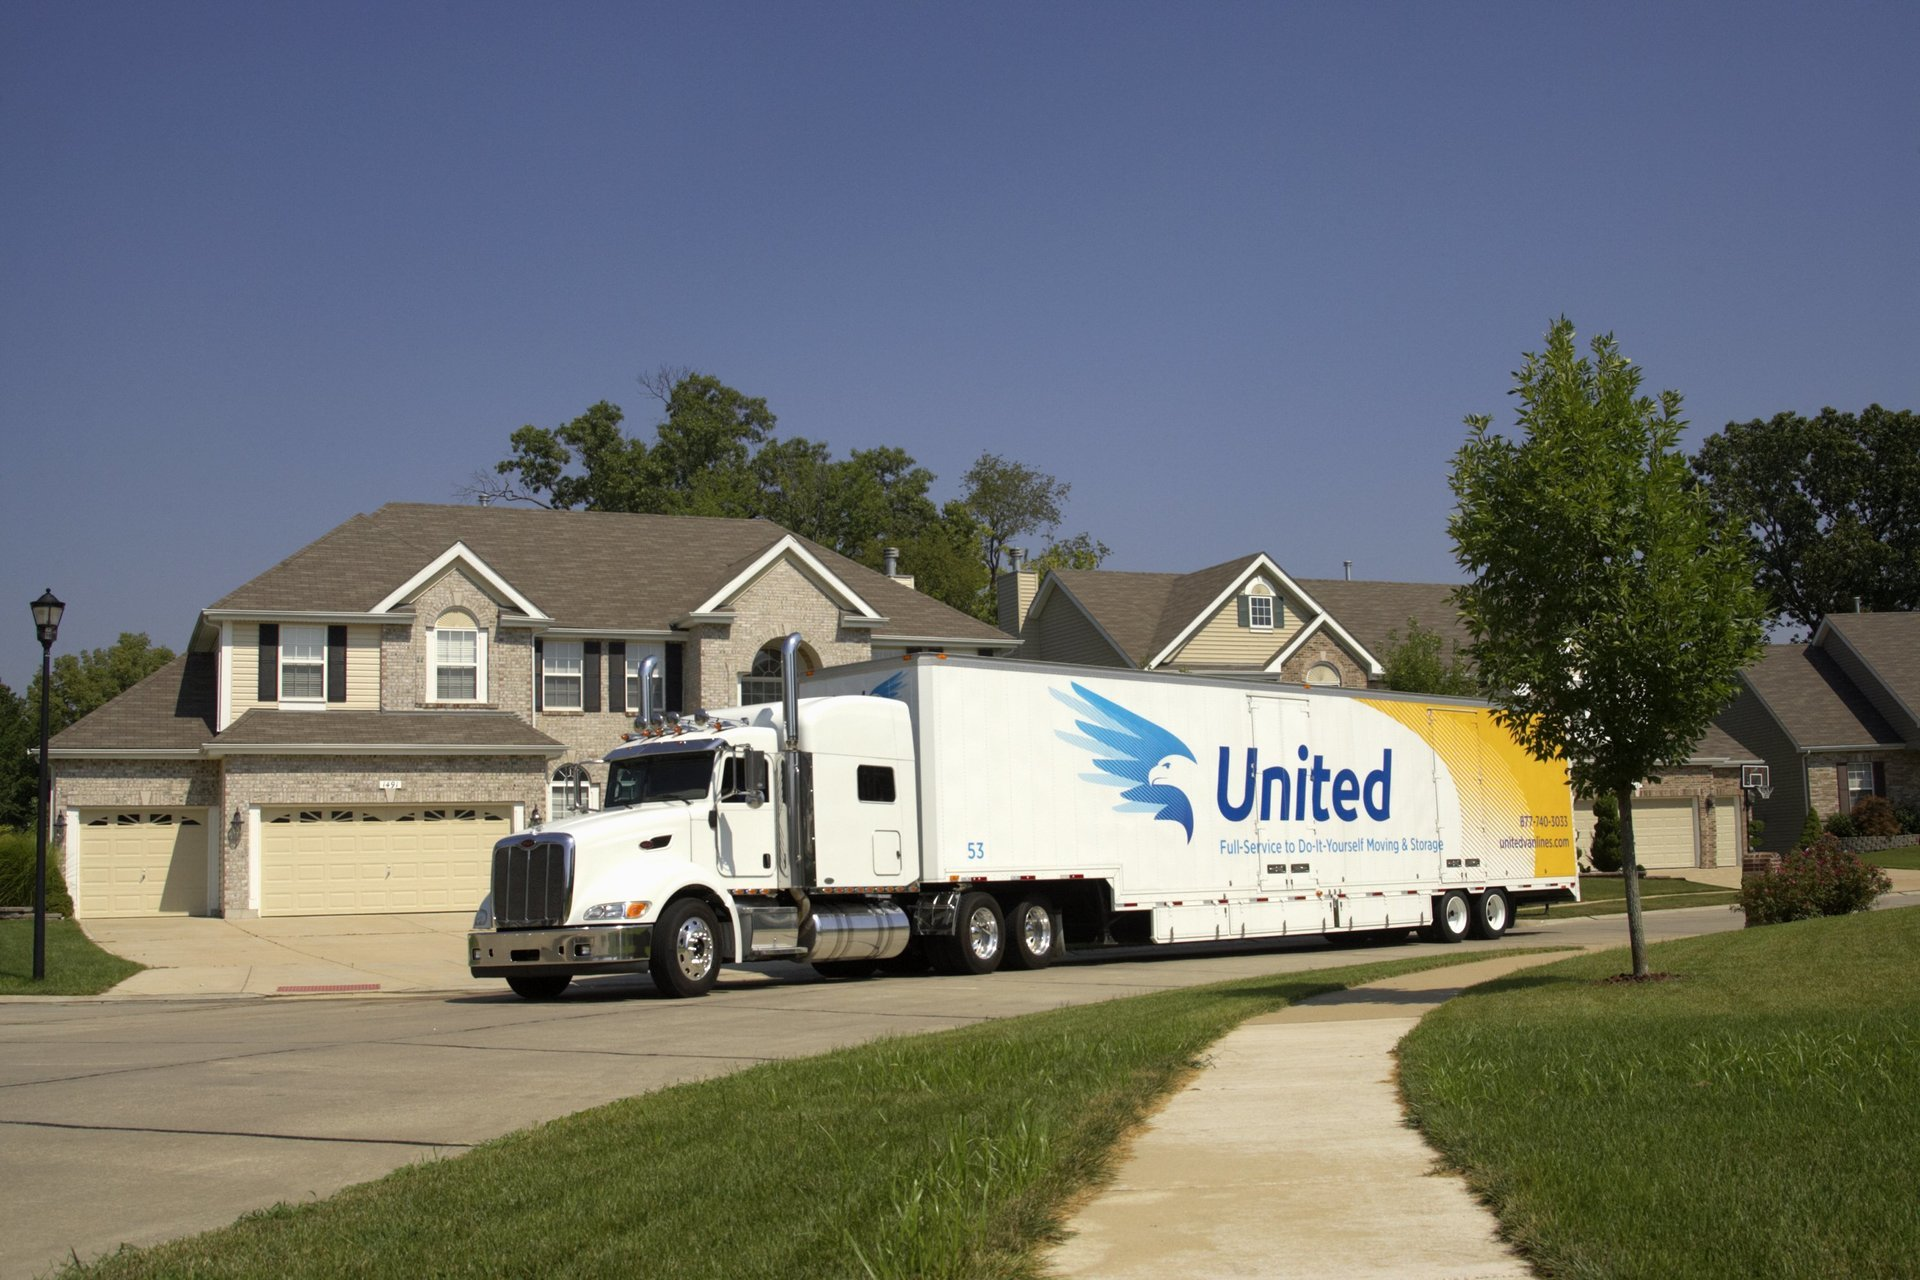 Movers with United truck & United Moving u0026 Storage | Premier Movers | Pacific Northwest Region